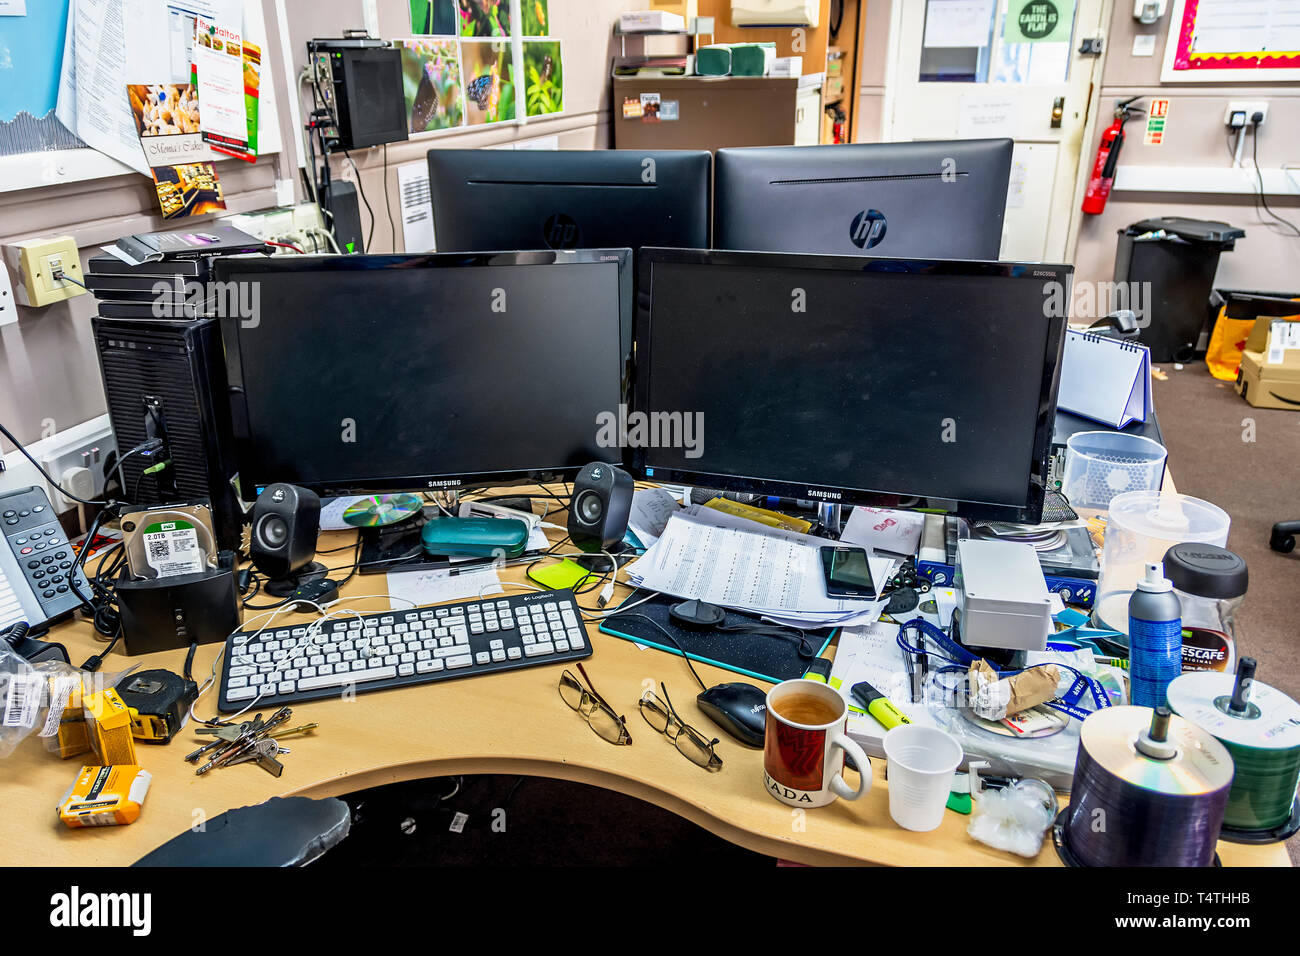 Messy desk in a workplace office. - Stock Image